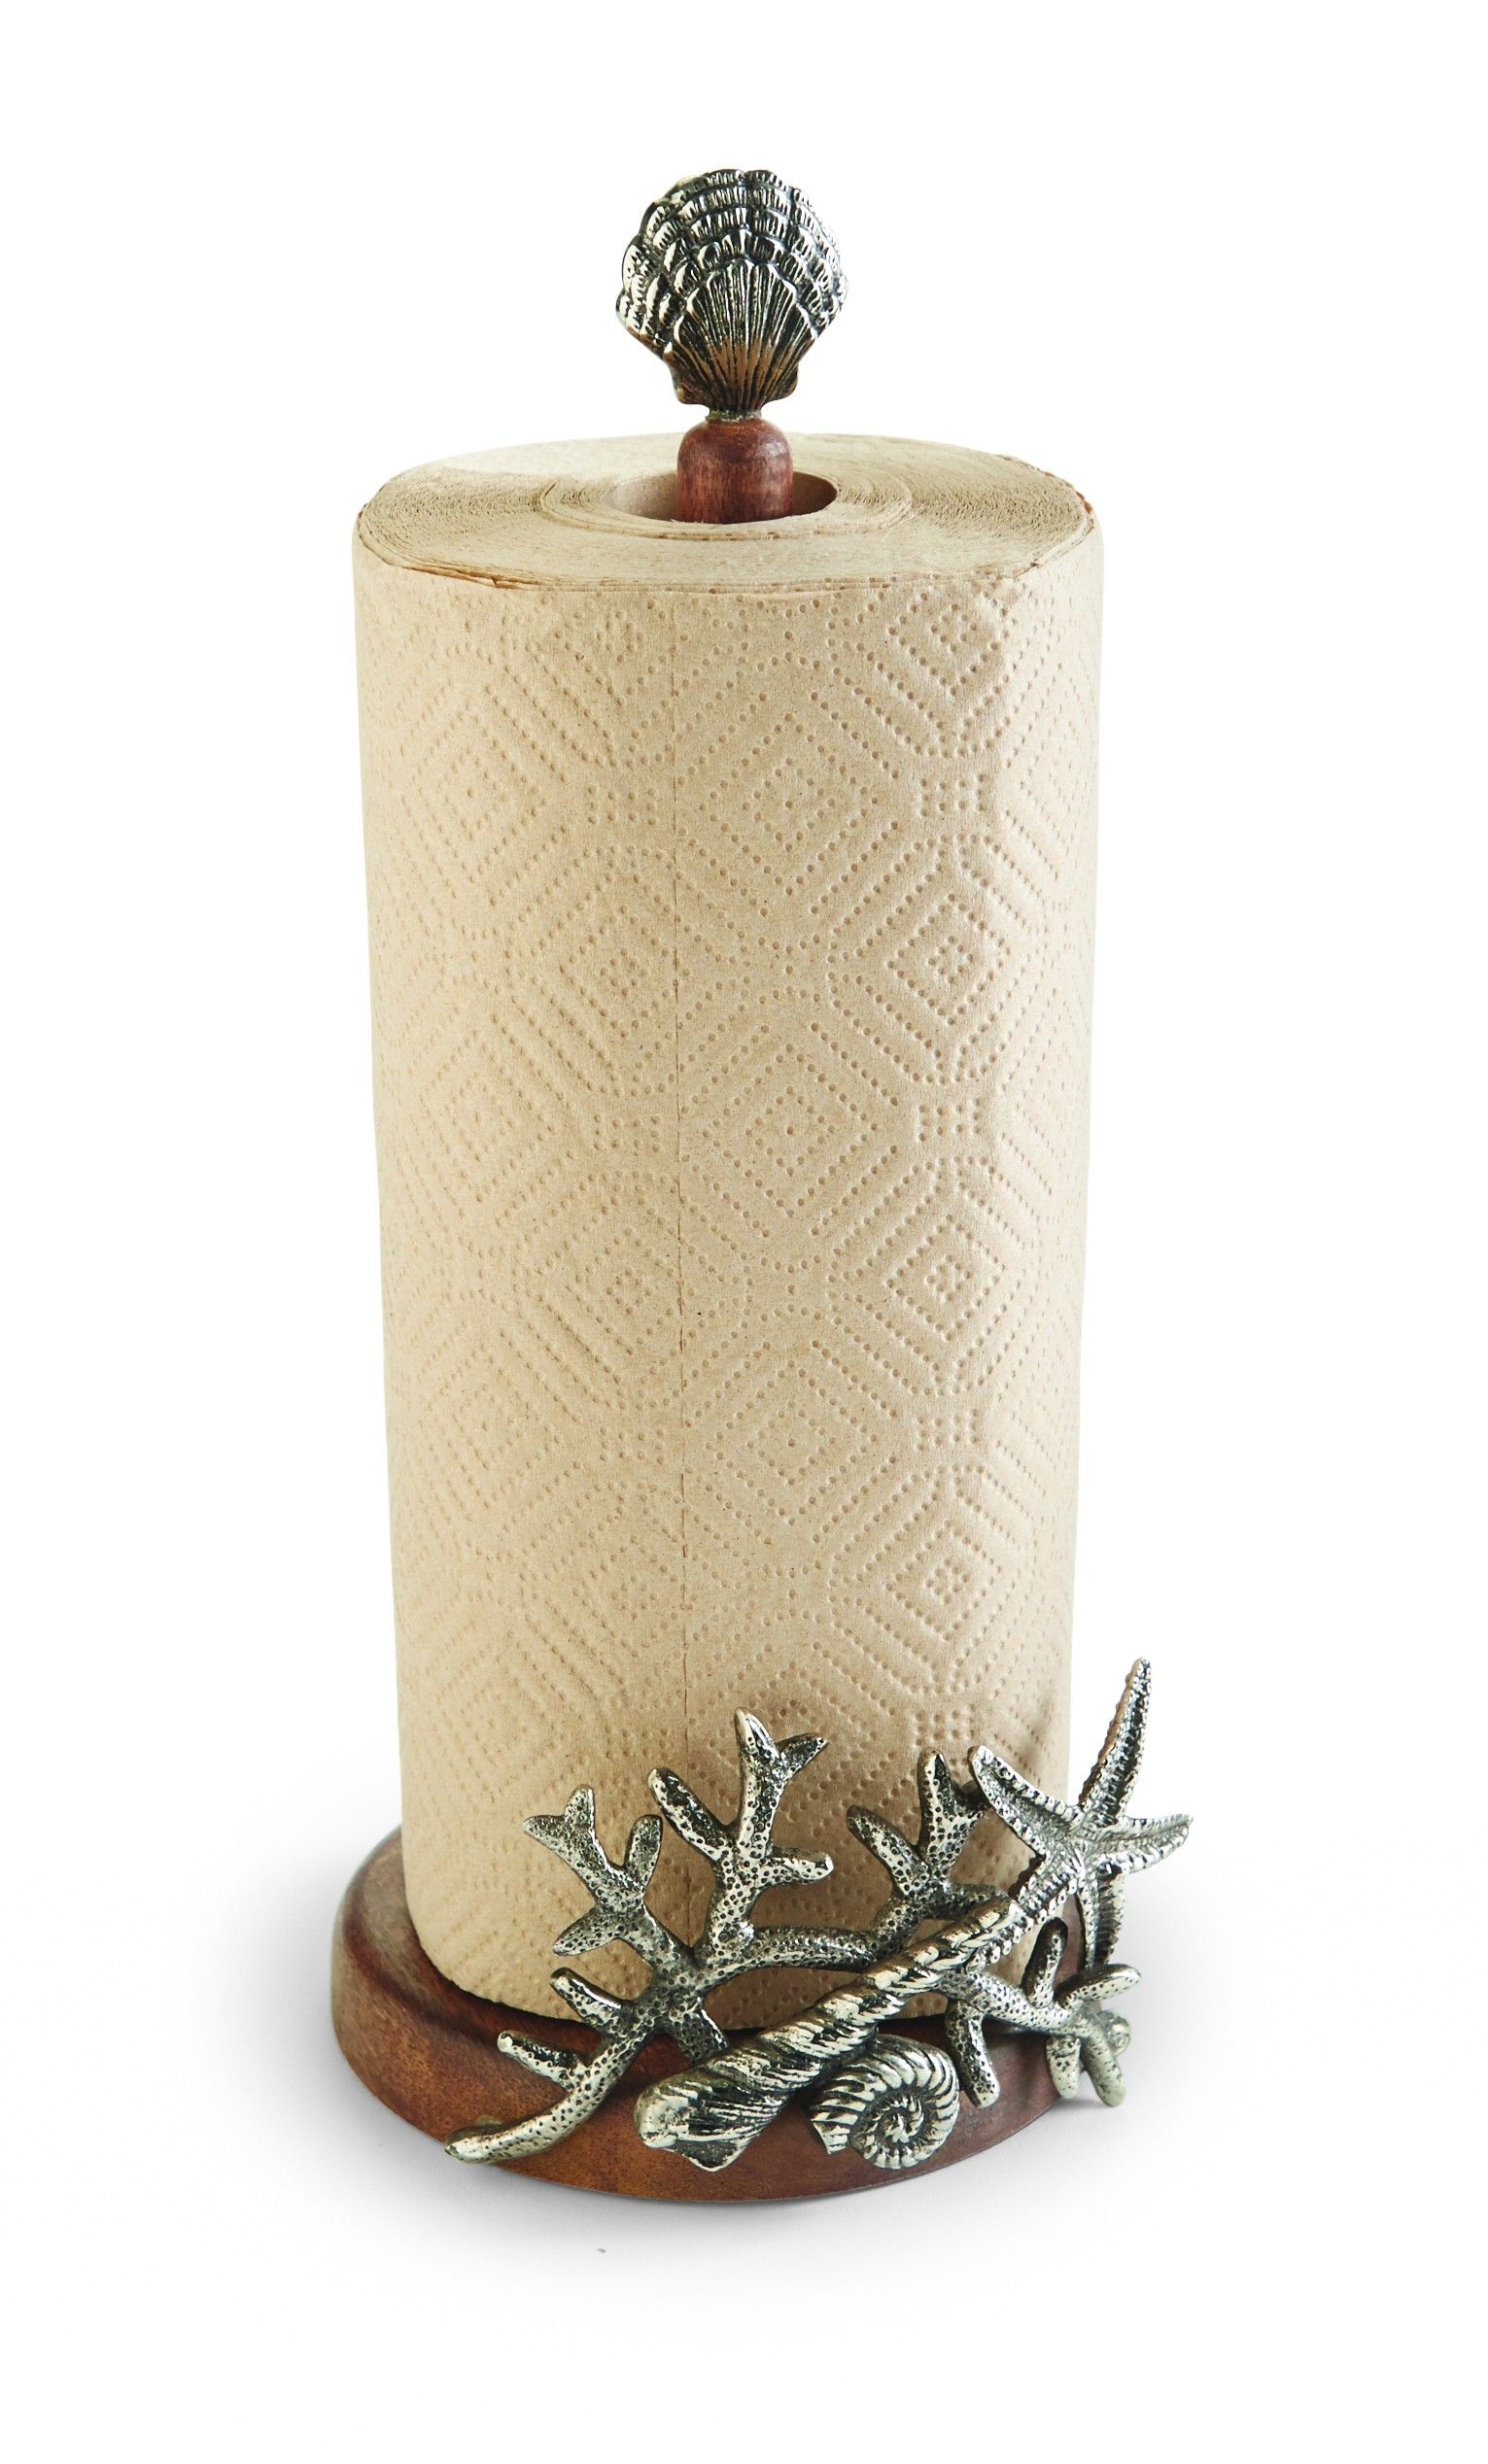 Coastal Paper Towel Holder Pleasing Coral & Starfish Paper Towel Holder  Coastal Decorating  Pinterest Design Ideas